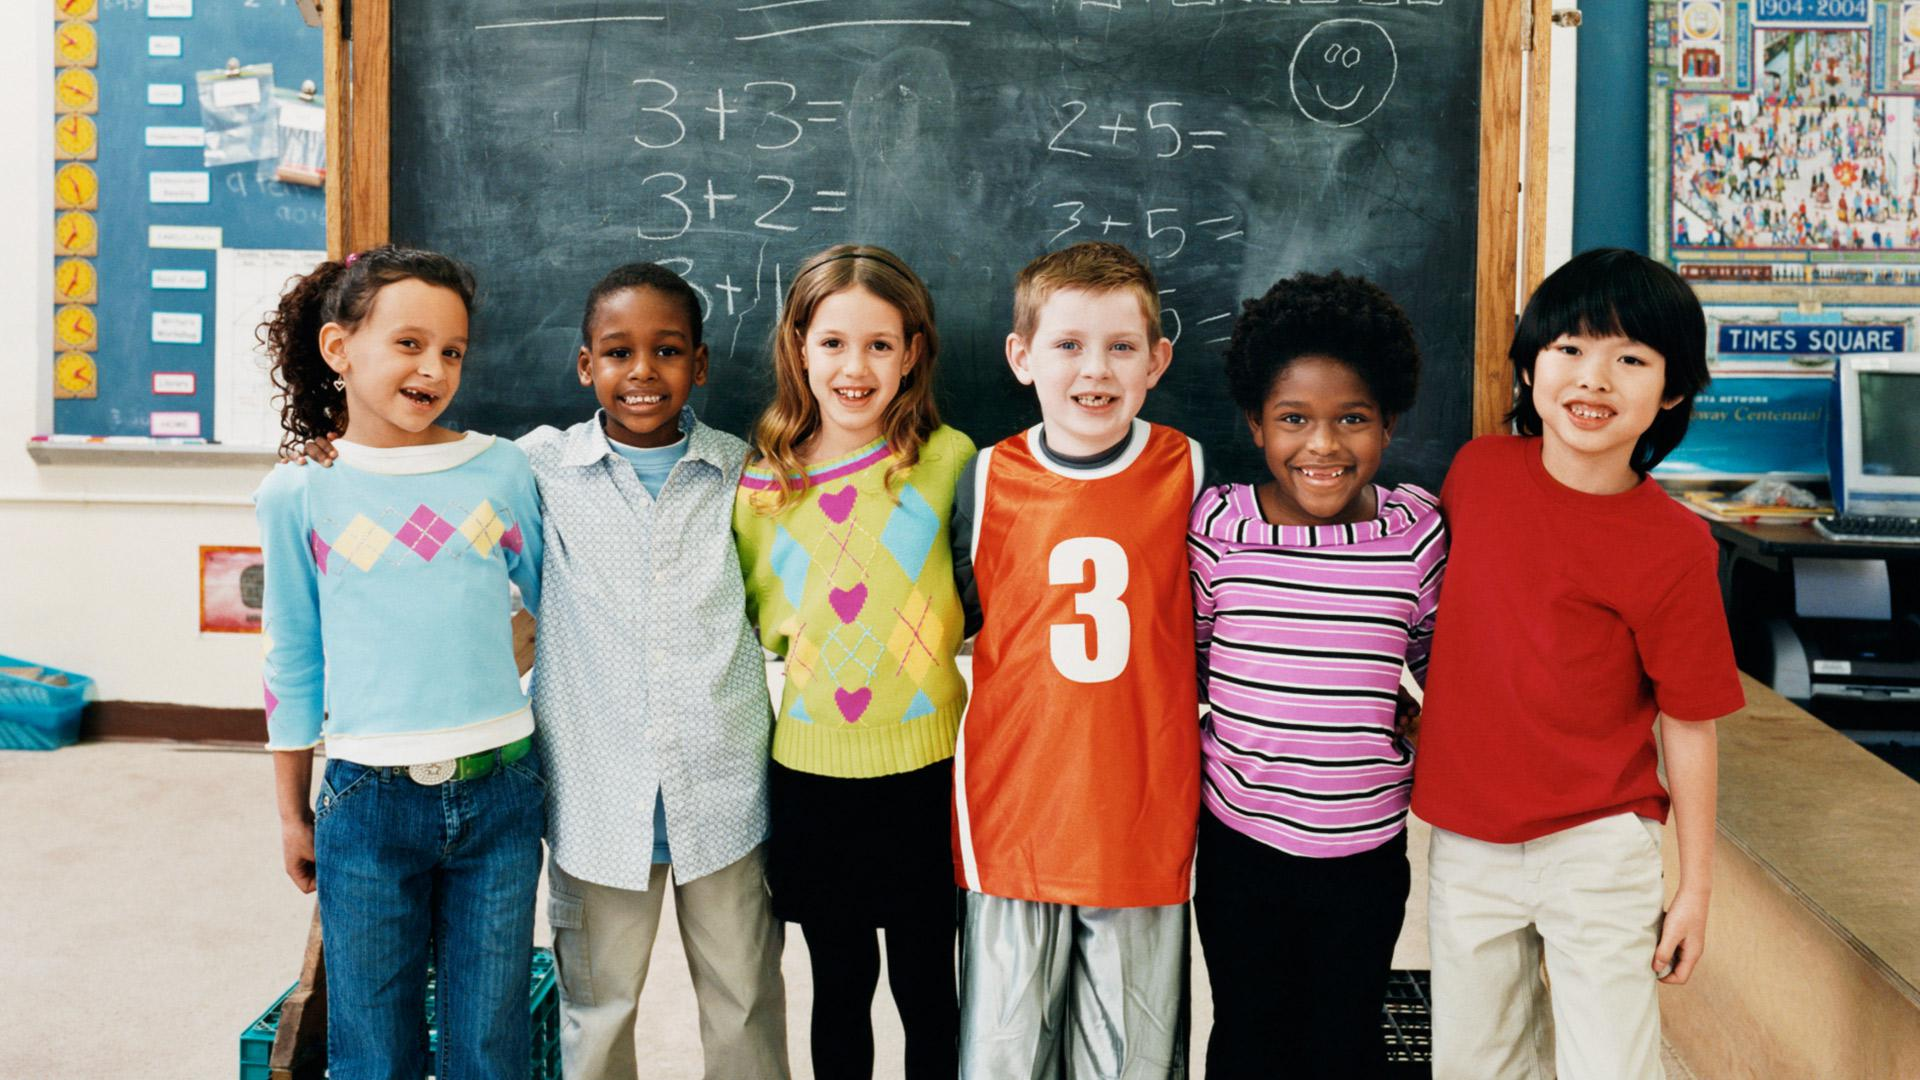 zimmer in grade school Test scores at this school are far above the state average, suggesting that most students at this school are performing at or above grade level parent tips even high-performing schools can have disparities between student groups.